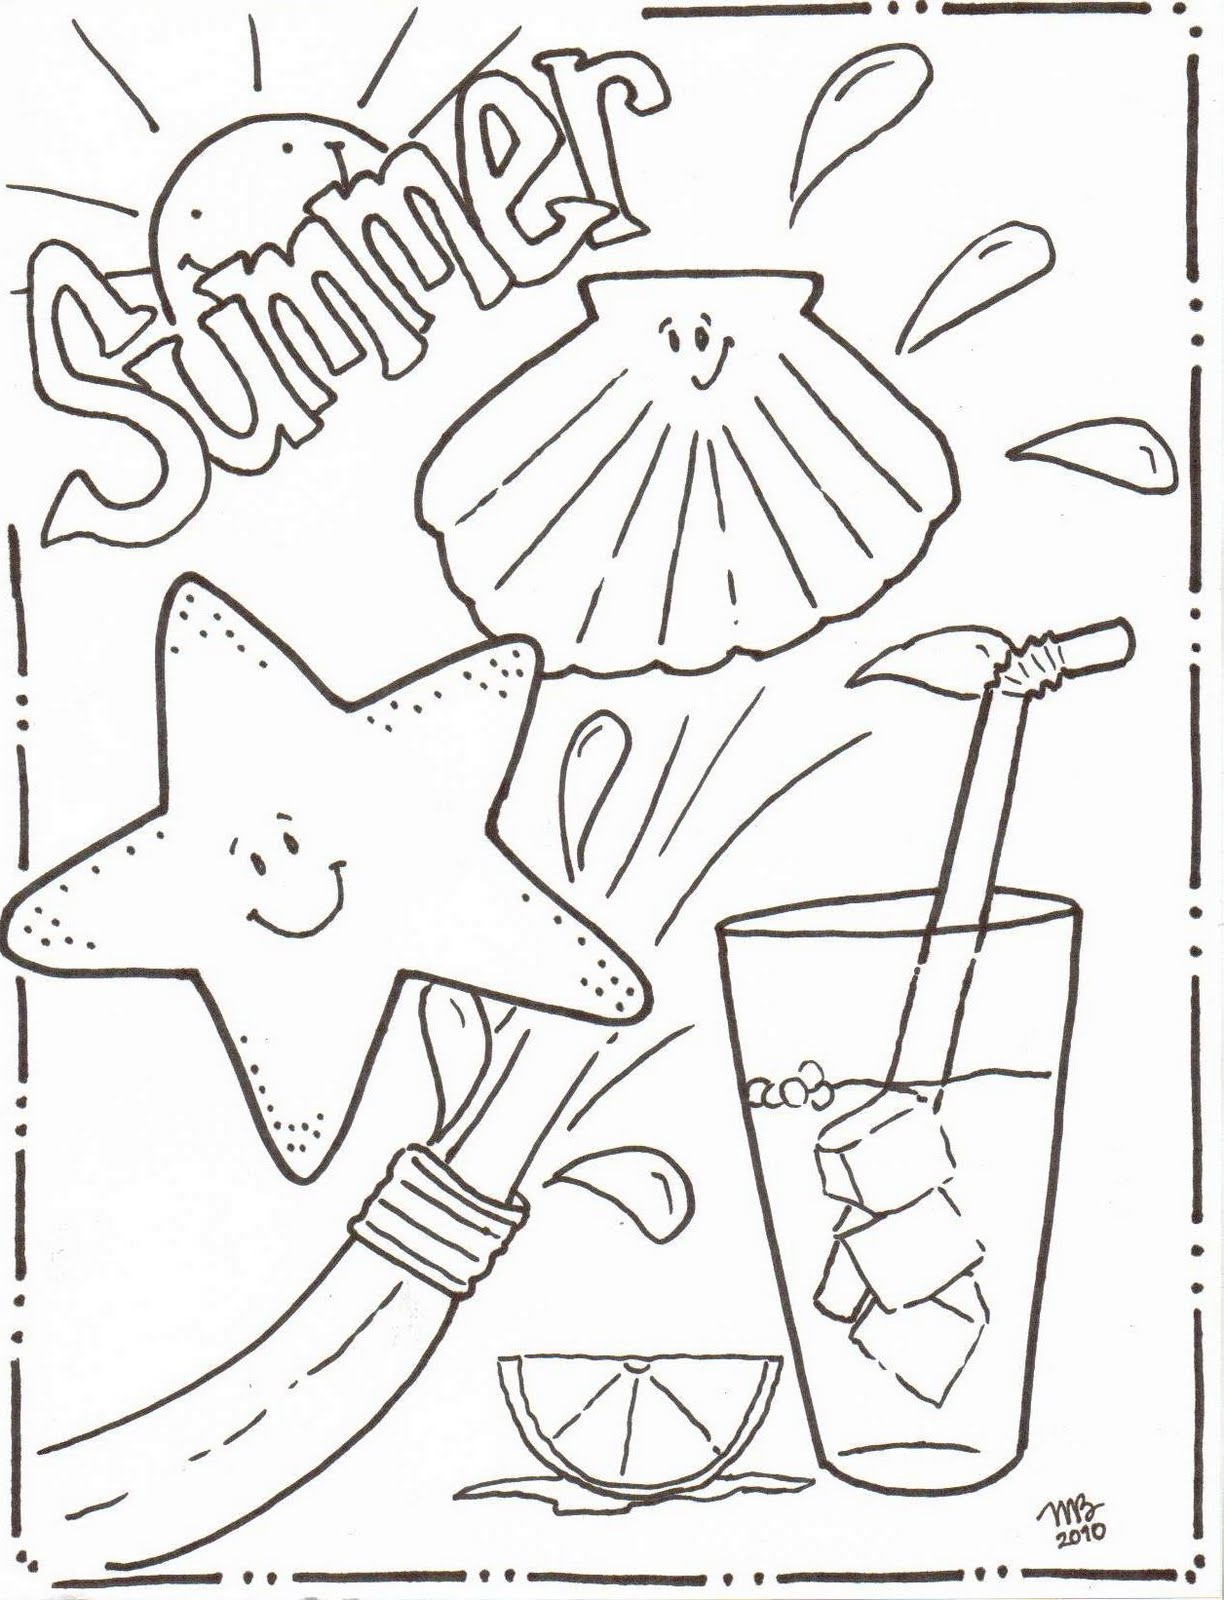 Free Printable Summer Coloring Pages For Preschoolers : Summer coloring pages to download and print for free